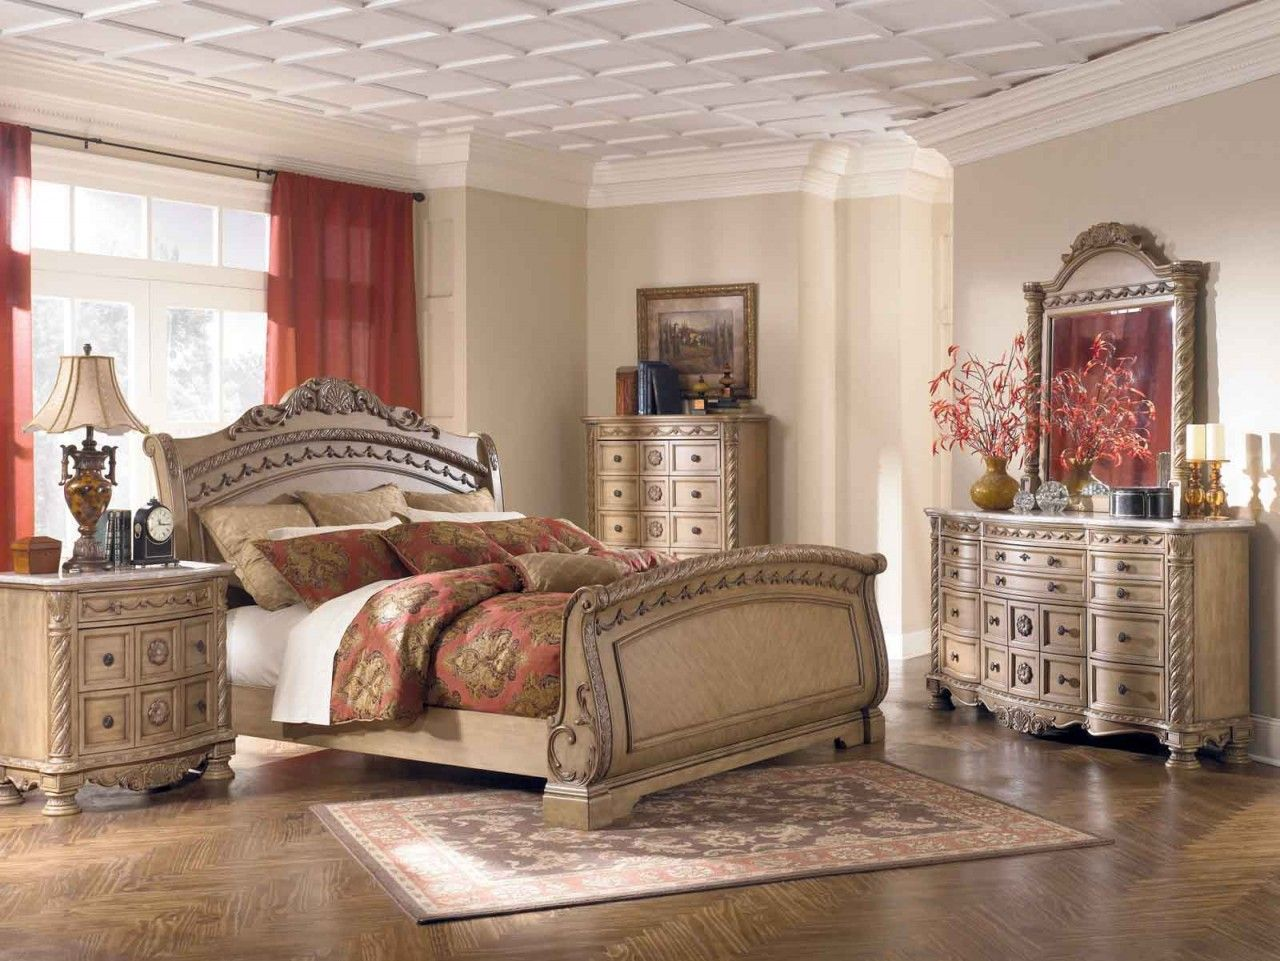 Bedroom Furniture Queen Sets bedroom decorative concept for bedroom furniture prices ashley